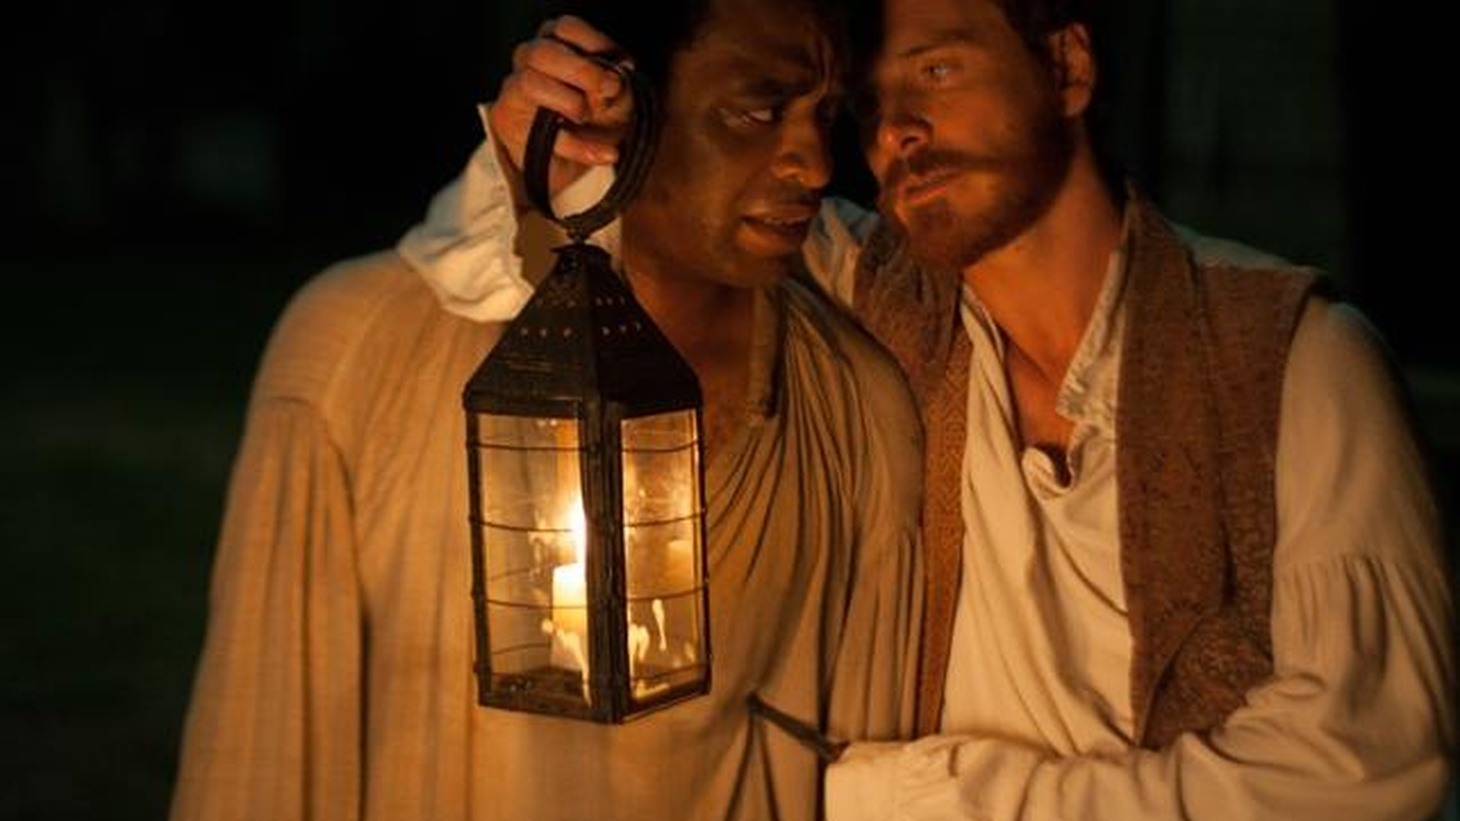 Movie audiences have never been presented with anything quite like the intertwined beauty and savagery of 12 Years A Slave...